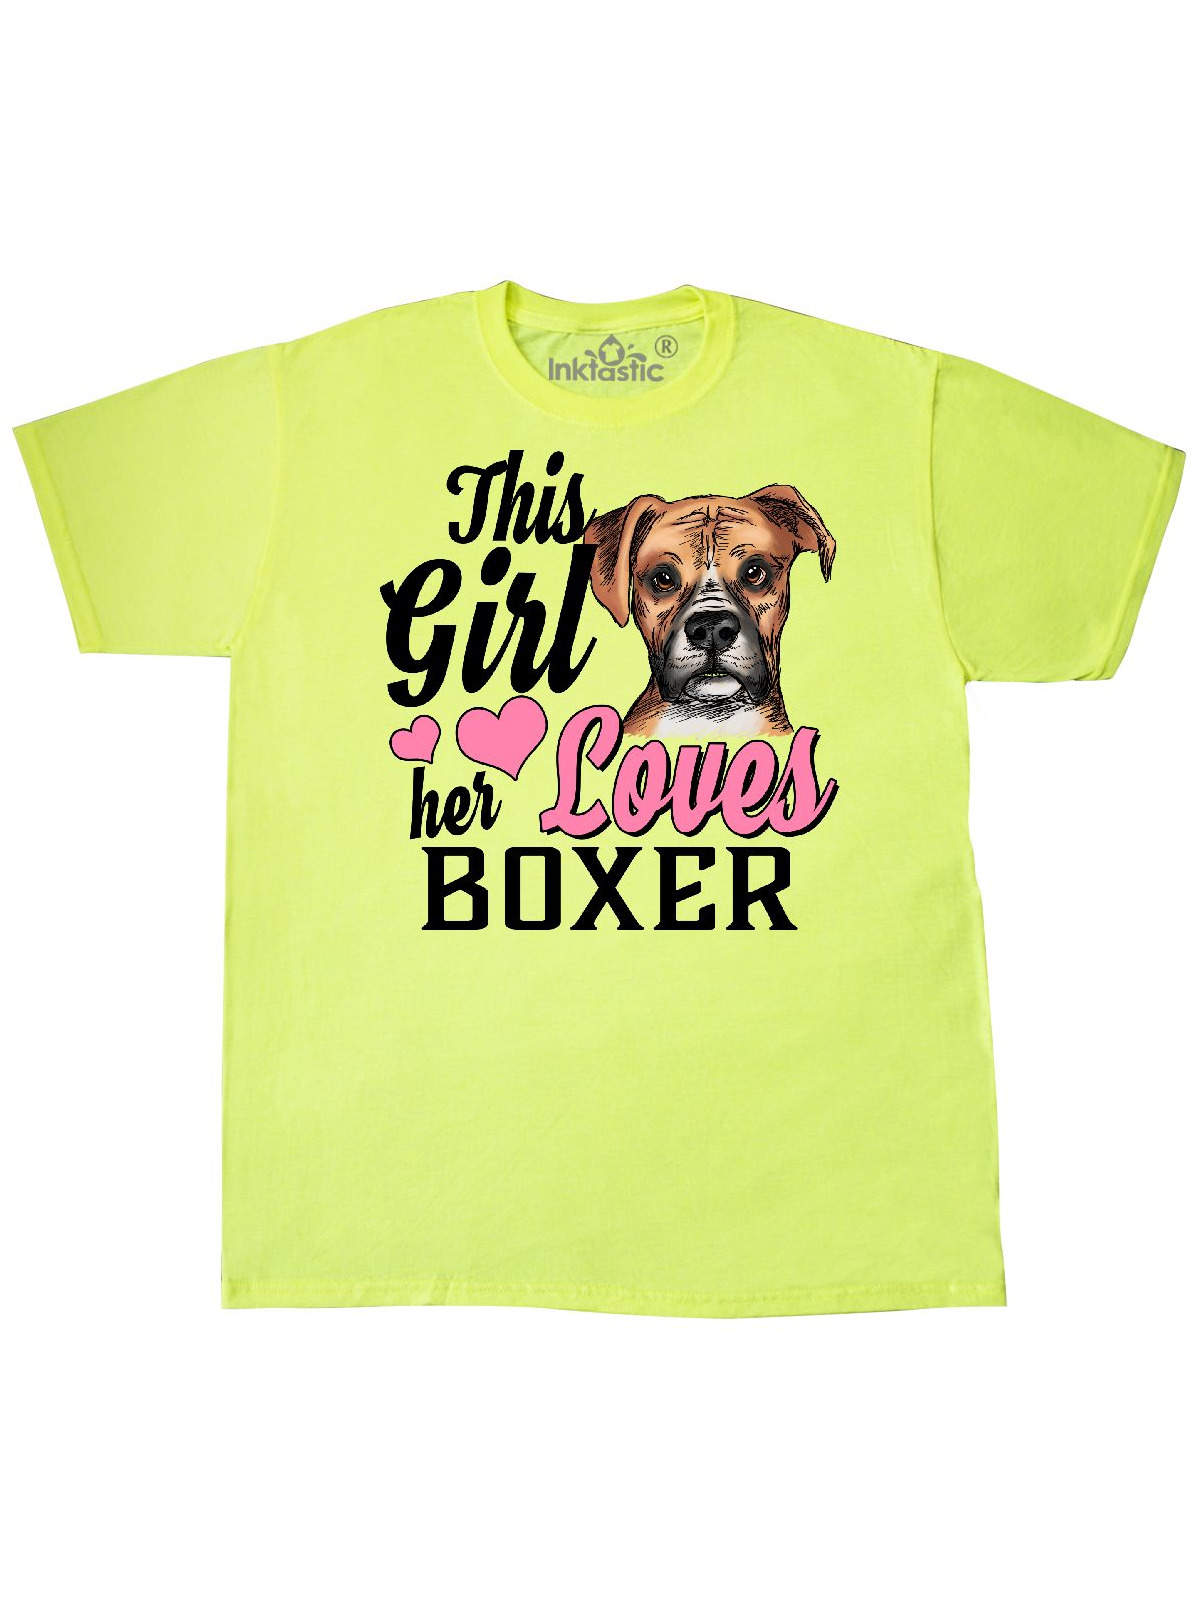 Inktastic This Girl Her Boxer T-Shirt Pets Dog Doggy Cute Love I Pitbulls